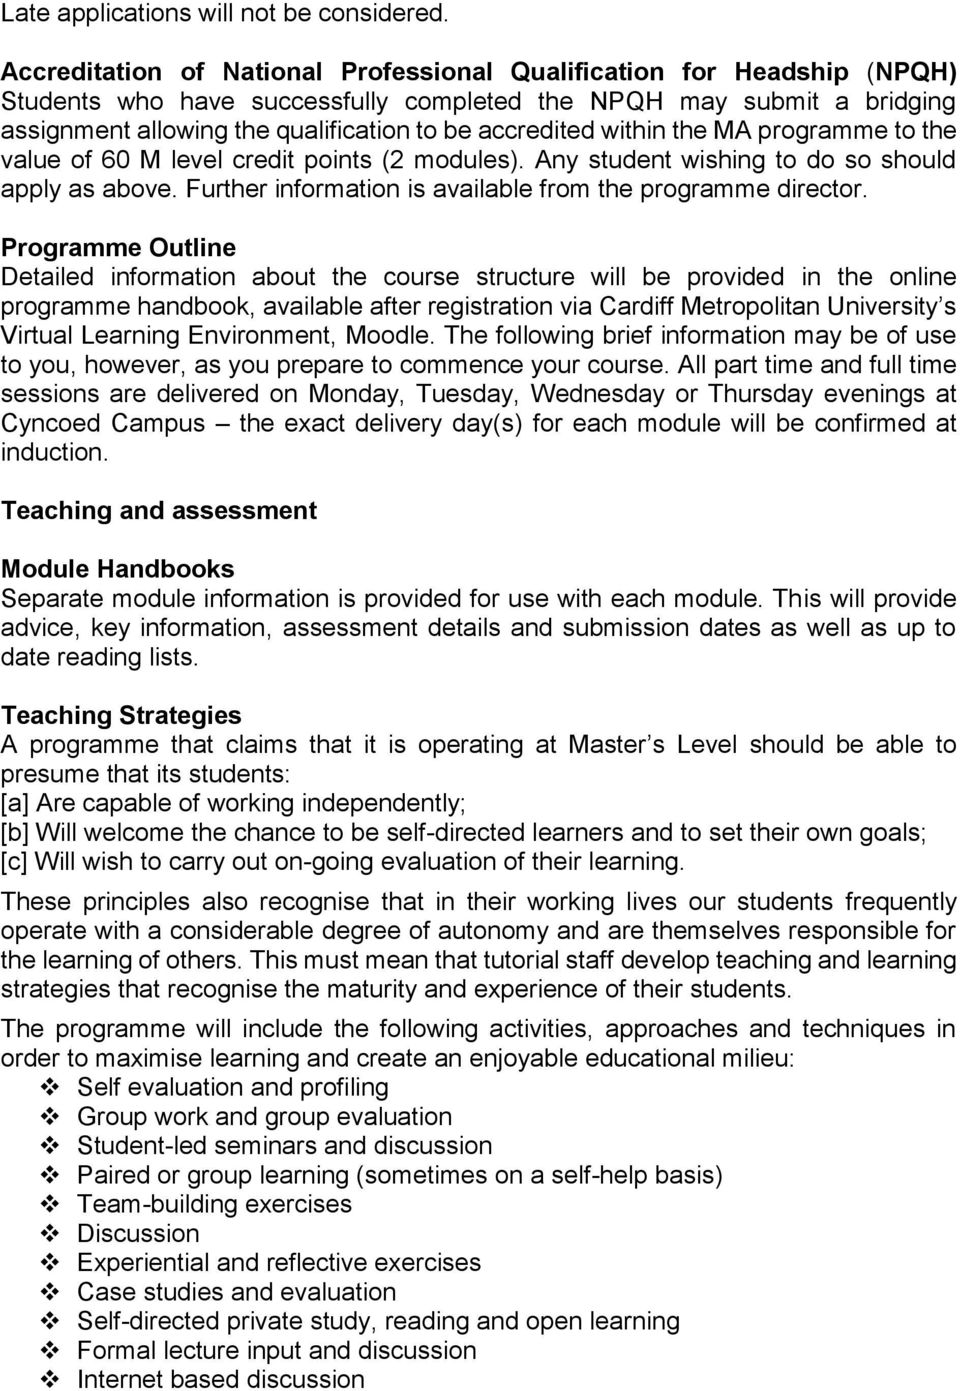 within the MA programme to the value of 60 M level credit points (2 modules). Any student wishing to do so should apply as above. Further information is available from the programme director.